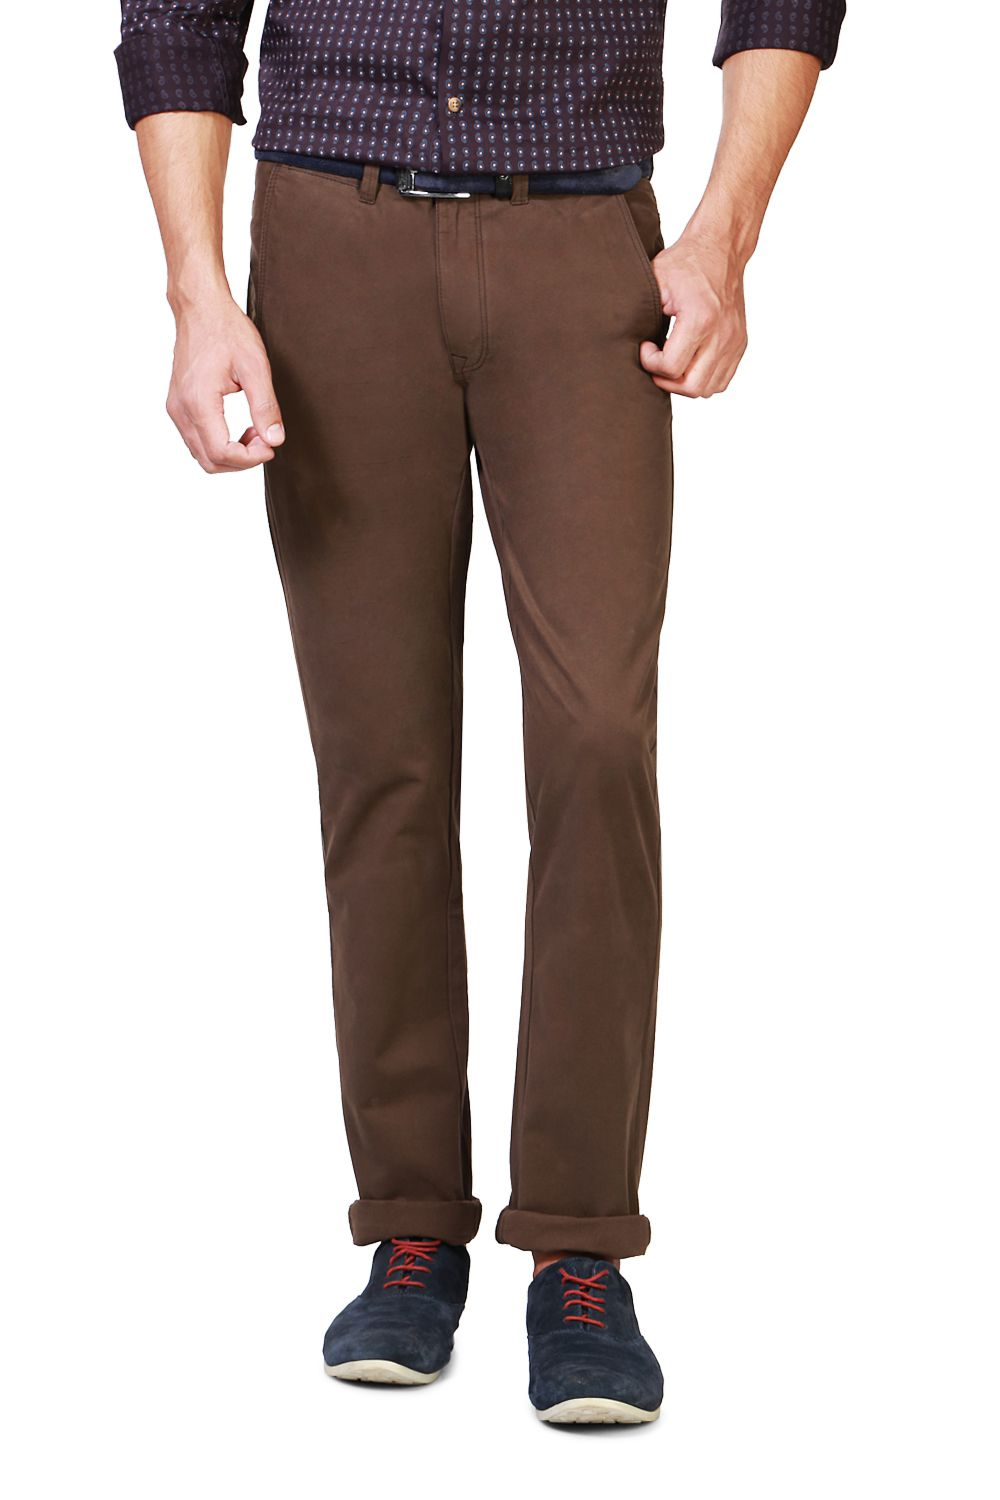 Peter England Brown Skinny -Fit Flat Trousers